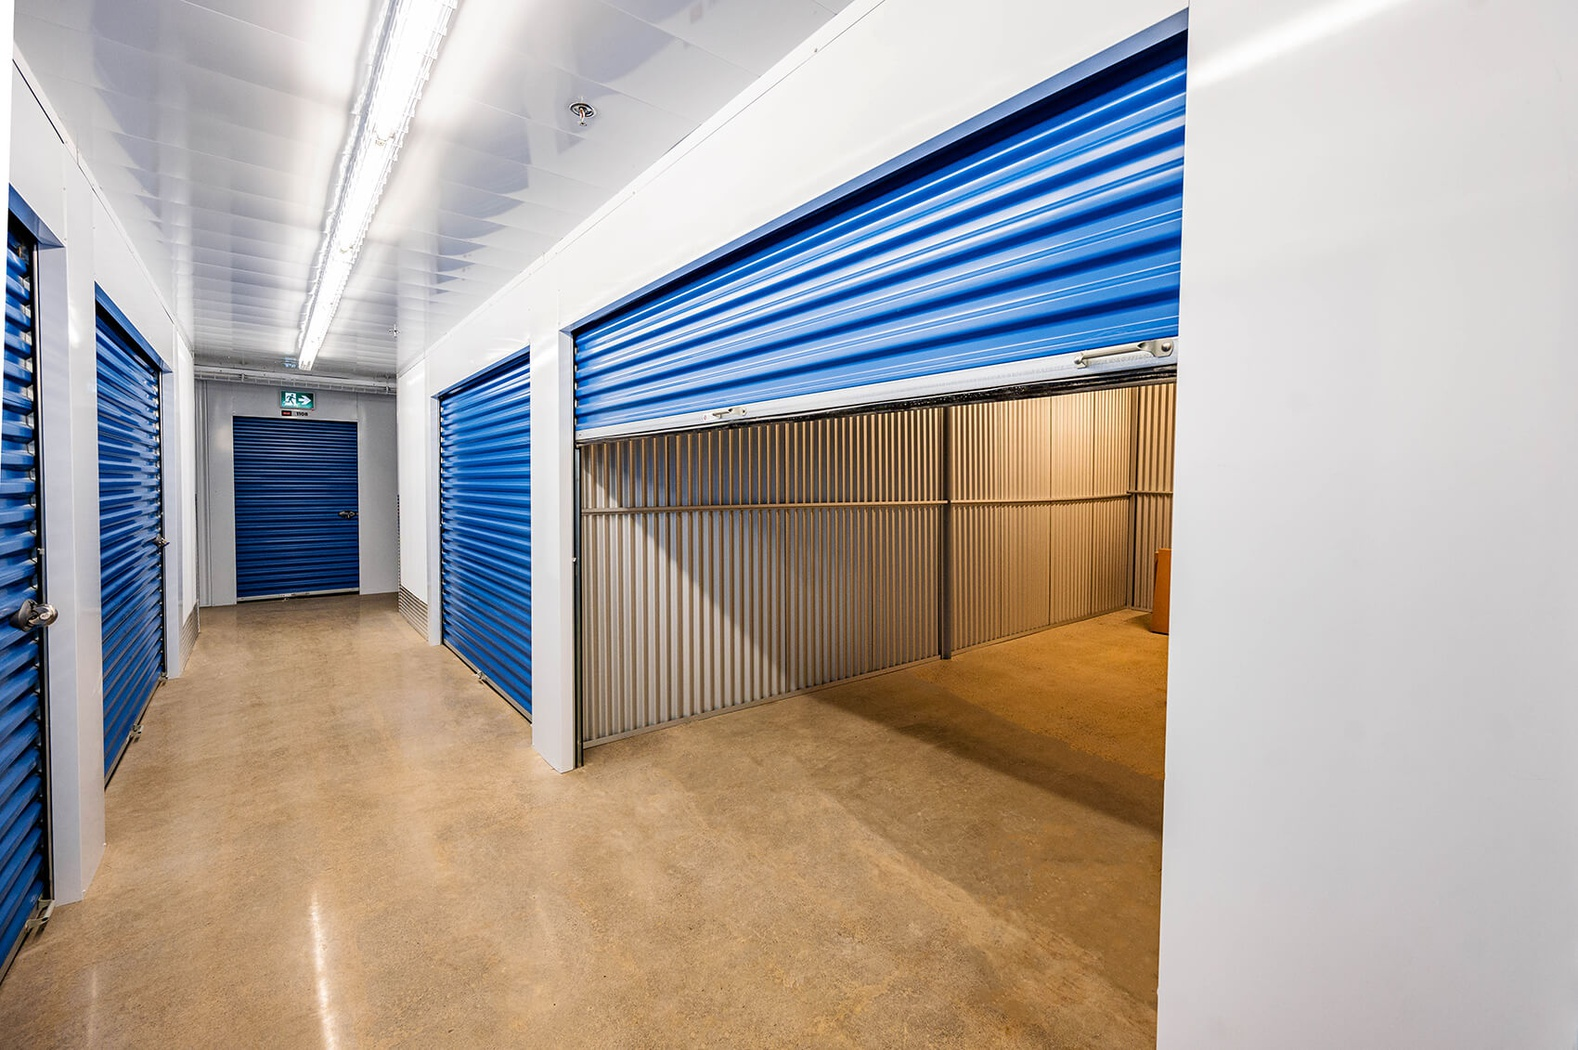 Access Storage is pleased to serve the community, offering Sudbury self-storage solutions for all its needs. Conveniently located northeast of downtown [...]